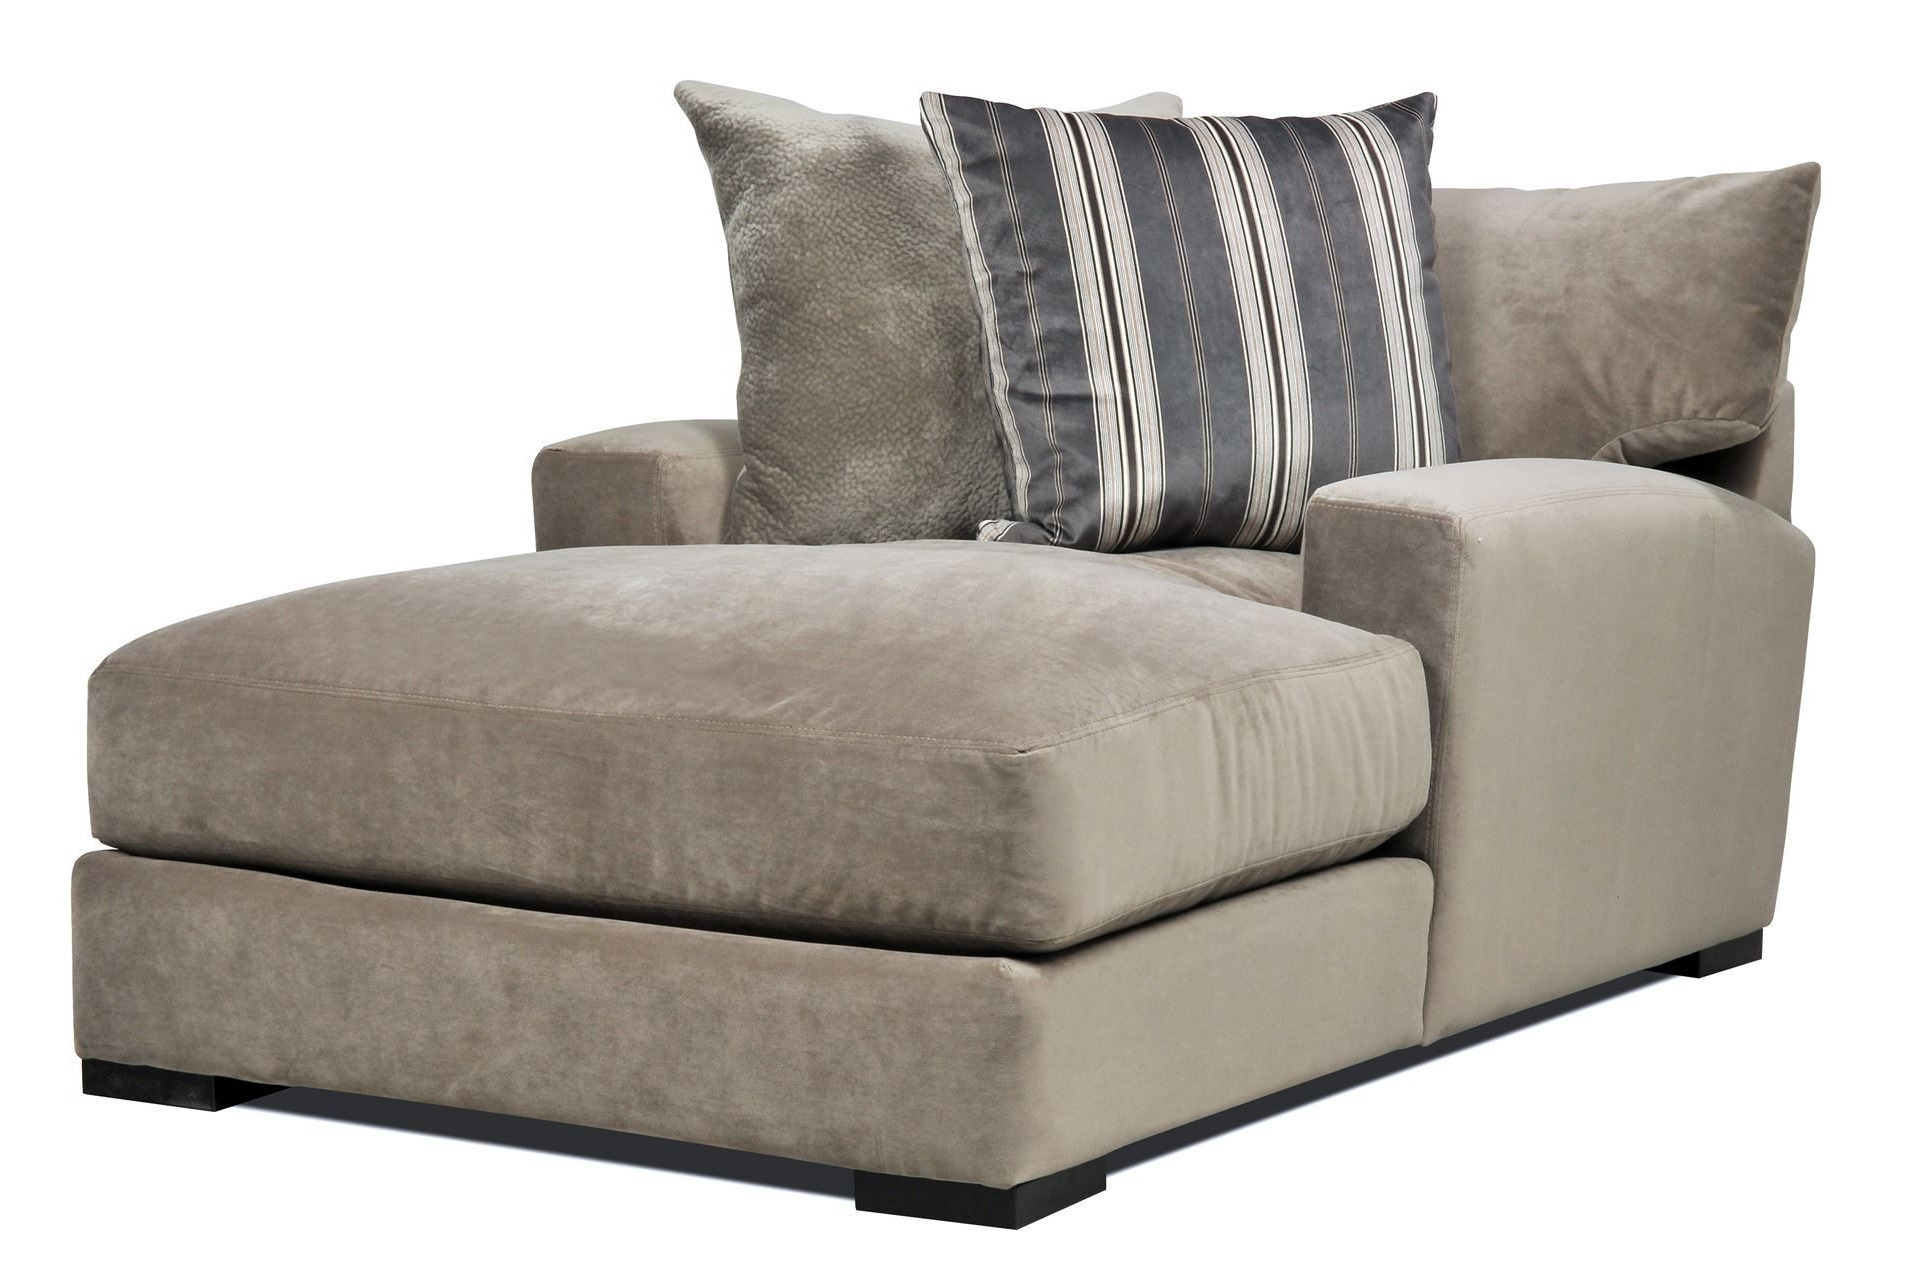 Oversized Chaise Lounges Pertaining To Favorite Furniture: One Arm Loveseat New Home Design Clubmona Wonderful (View 3 of 15)